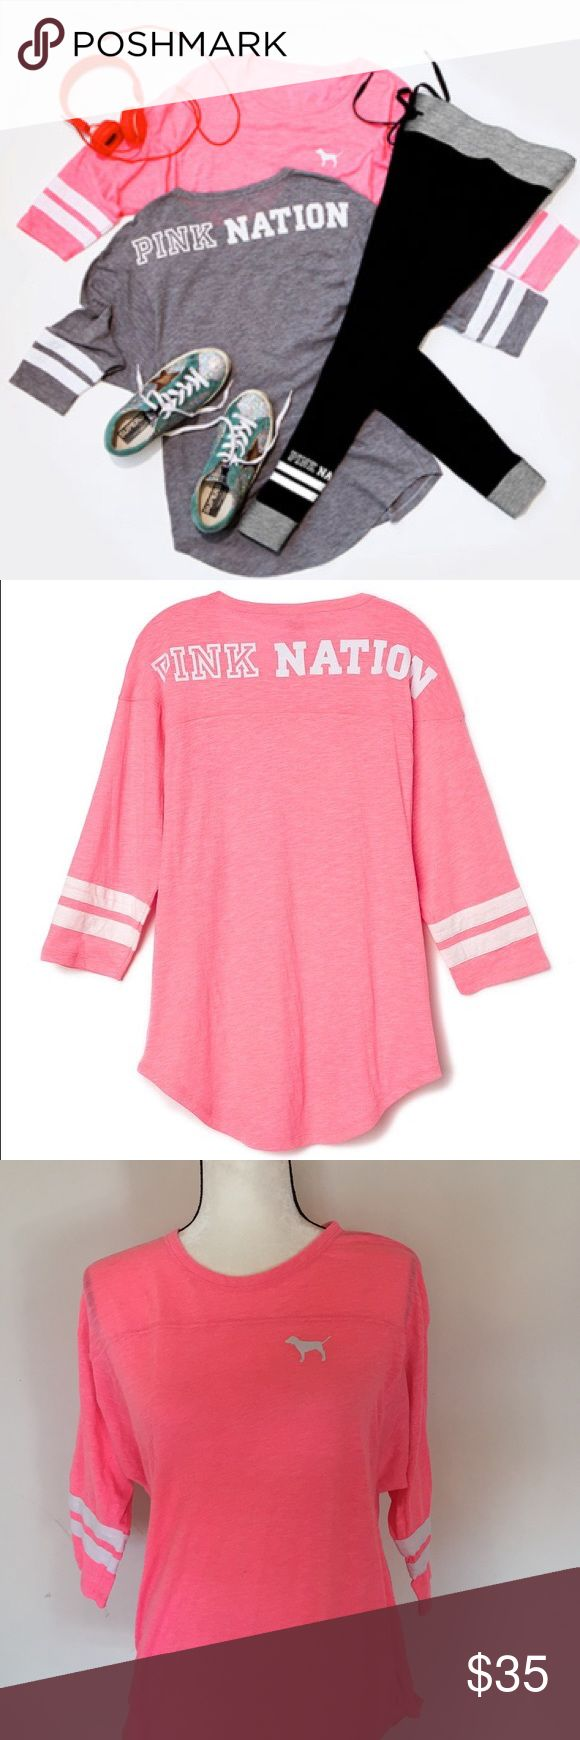 Pink jersey shirt Worn once like new condition PINK Victoria's Secret Tops